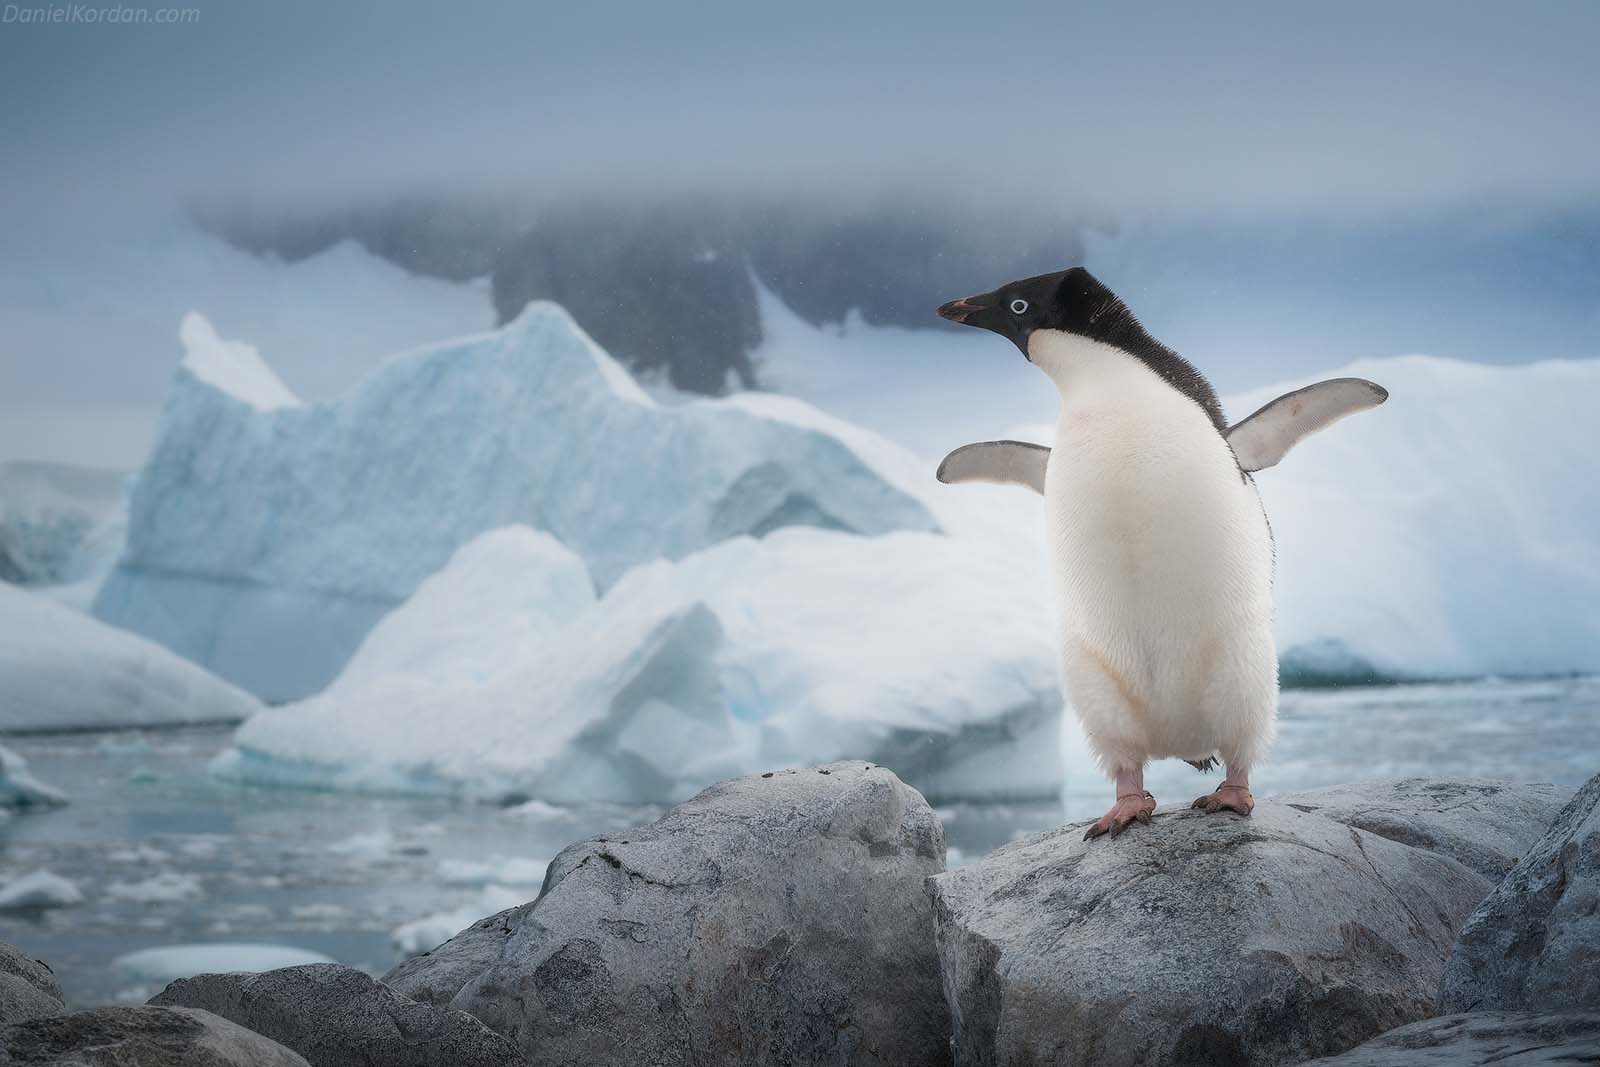 22 Day Antarctica Photography Expedition on Bark Europa - day 1